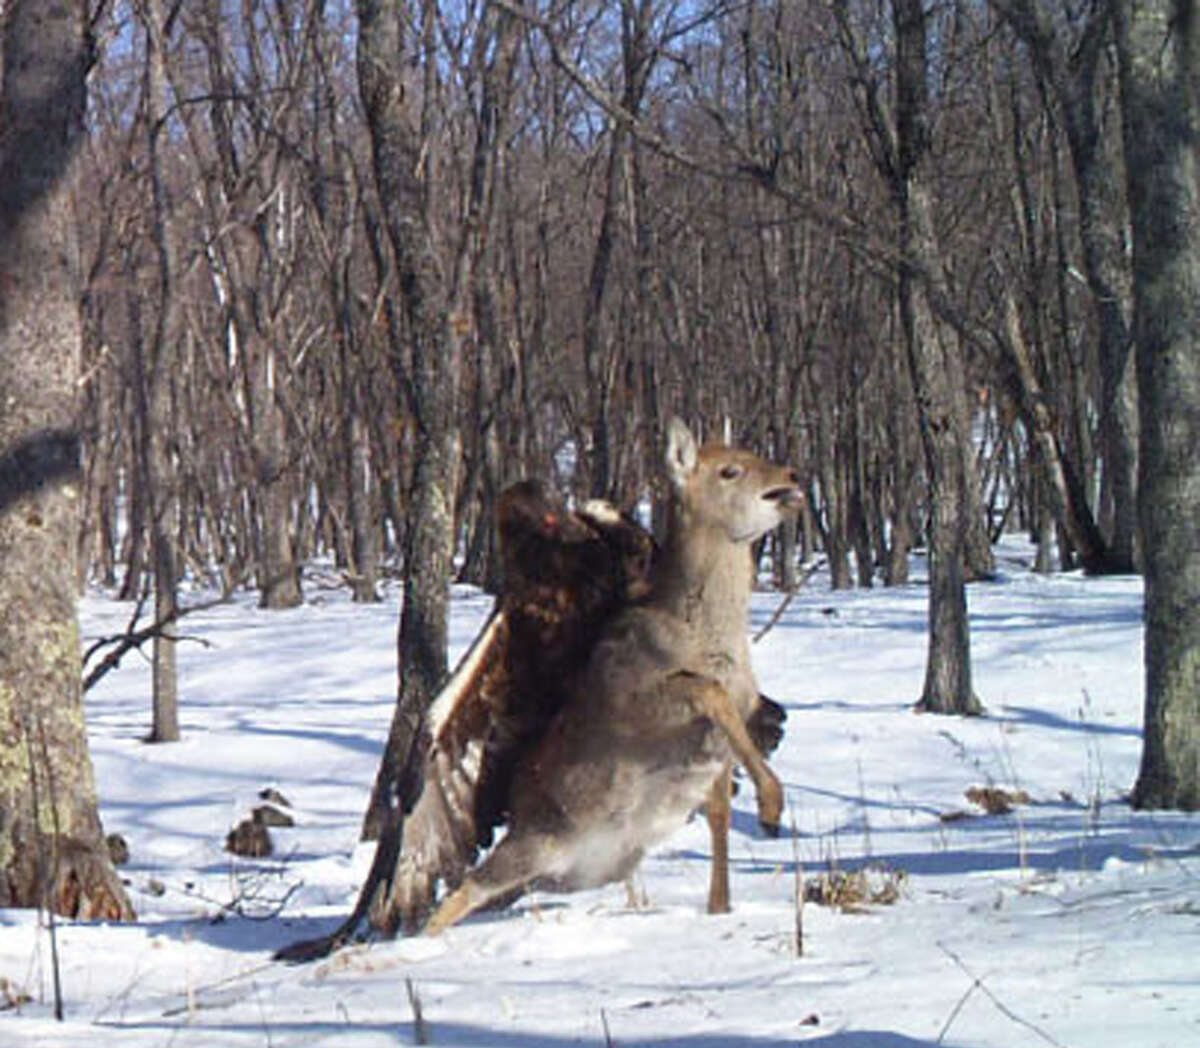 A golden eagle captures a young sika deer in the Russian Far East. The rare attack was captured by a camera trap set up by the Zoological Society of London and Wildlife Conservation Society. Photo credit: Linda Kerley, Zoological Society of London (ZSL)